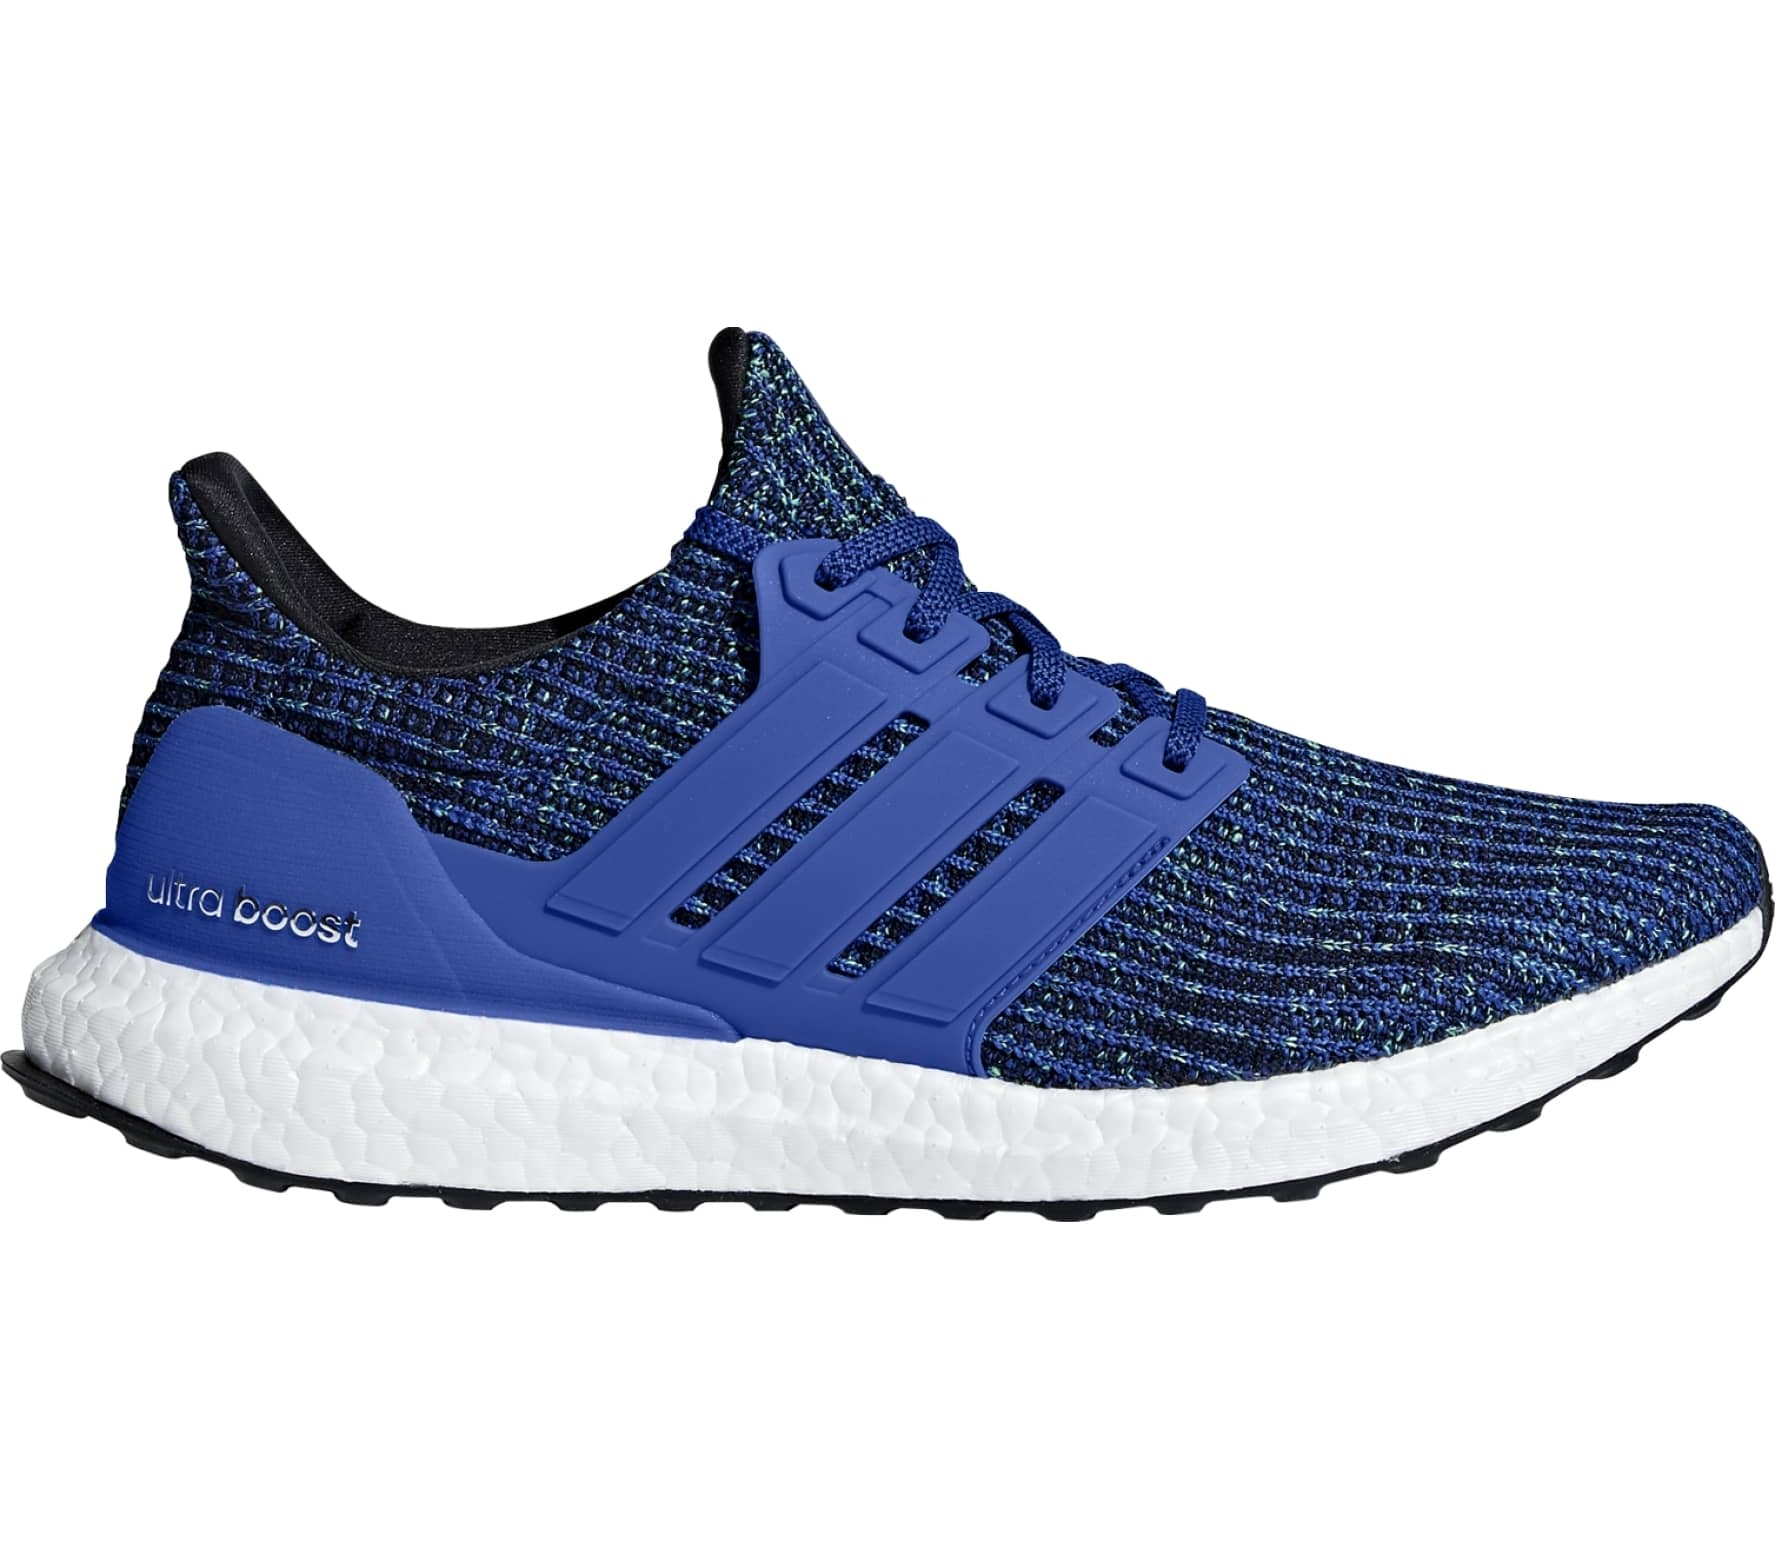 945c02b60aee Adidas - Ultra Boost Special Colours men s running shoes (blue dark blue)